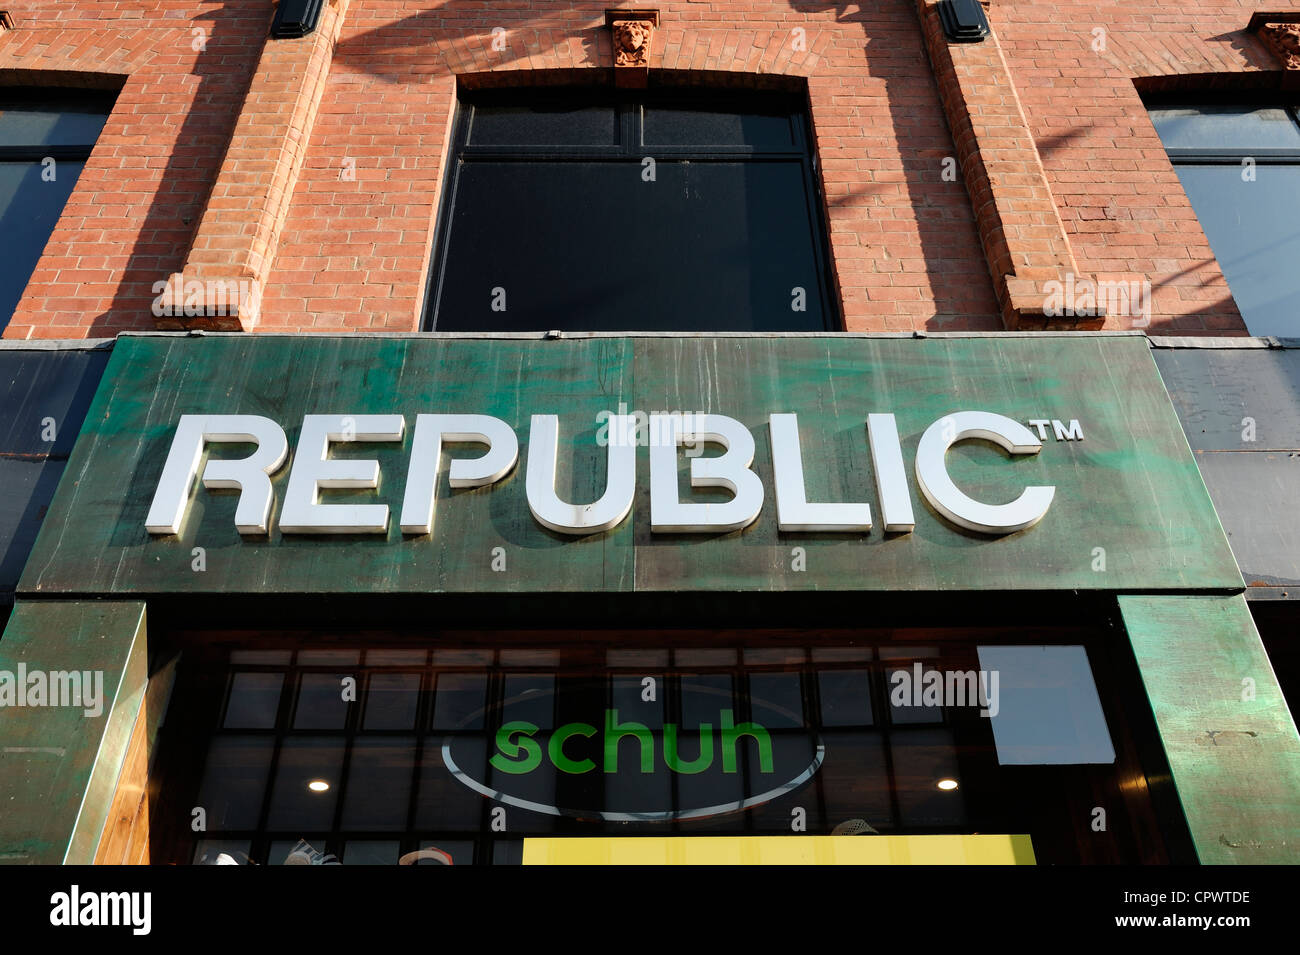 Republic shop front sign - Stock Image